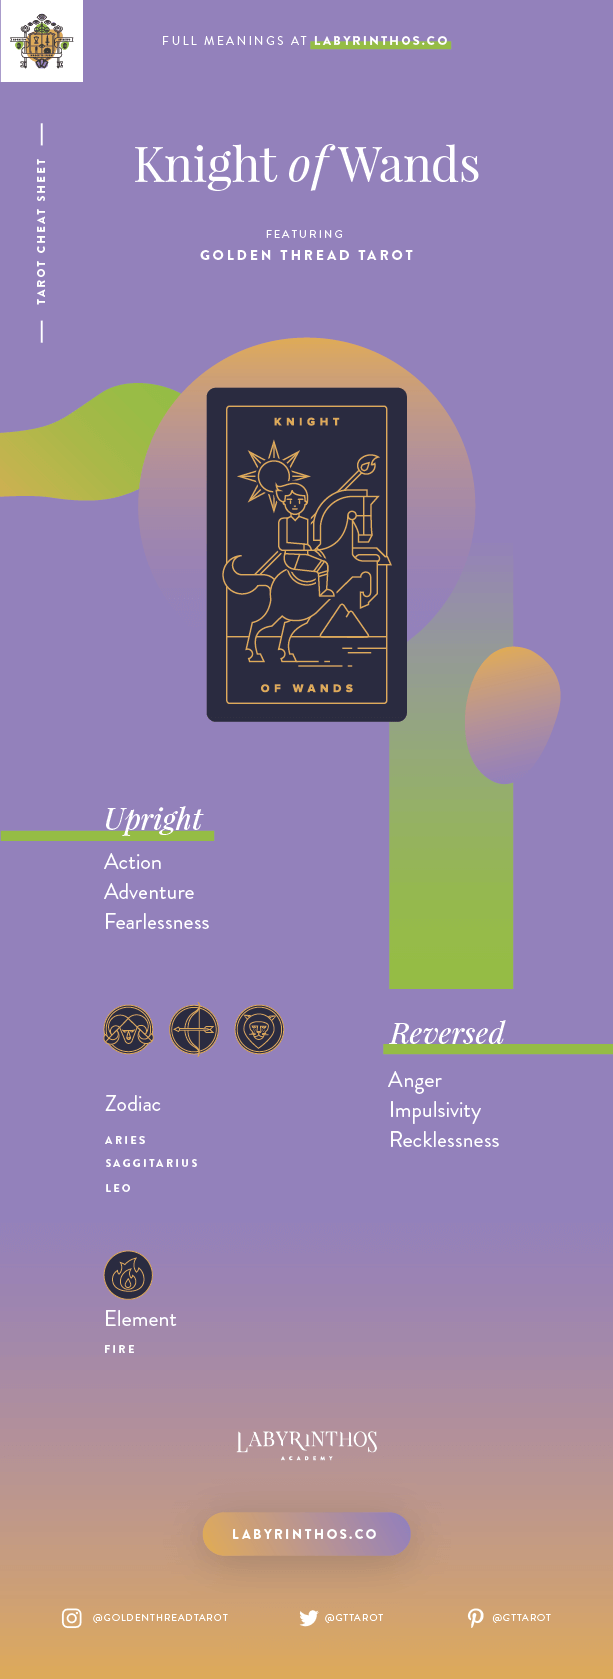 Knight of Wands Meaning - Tarot Card Meanings Cheat Sheet